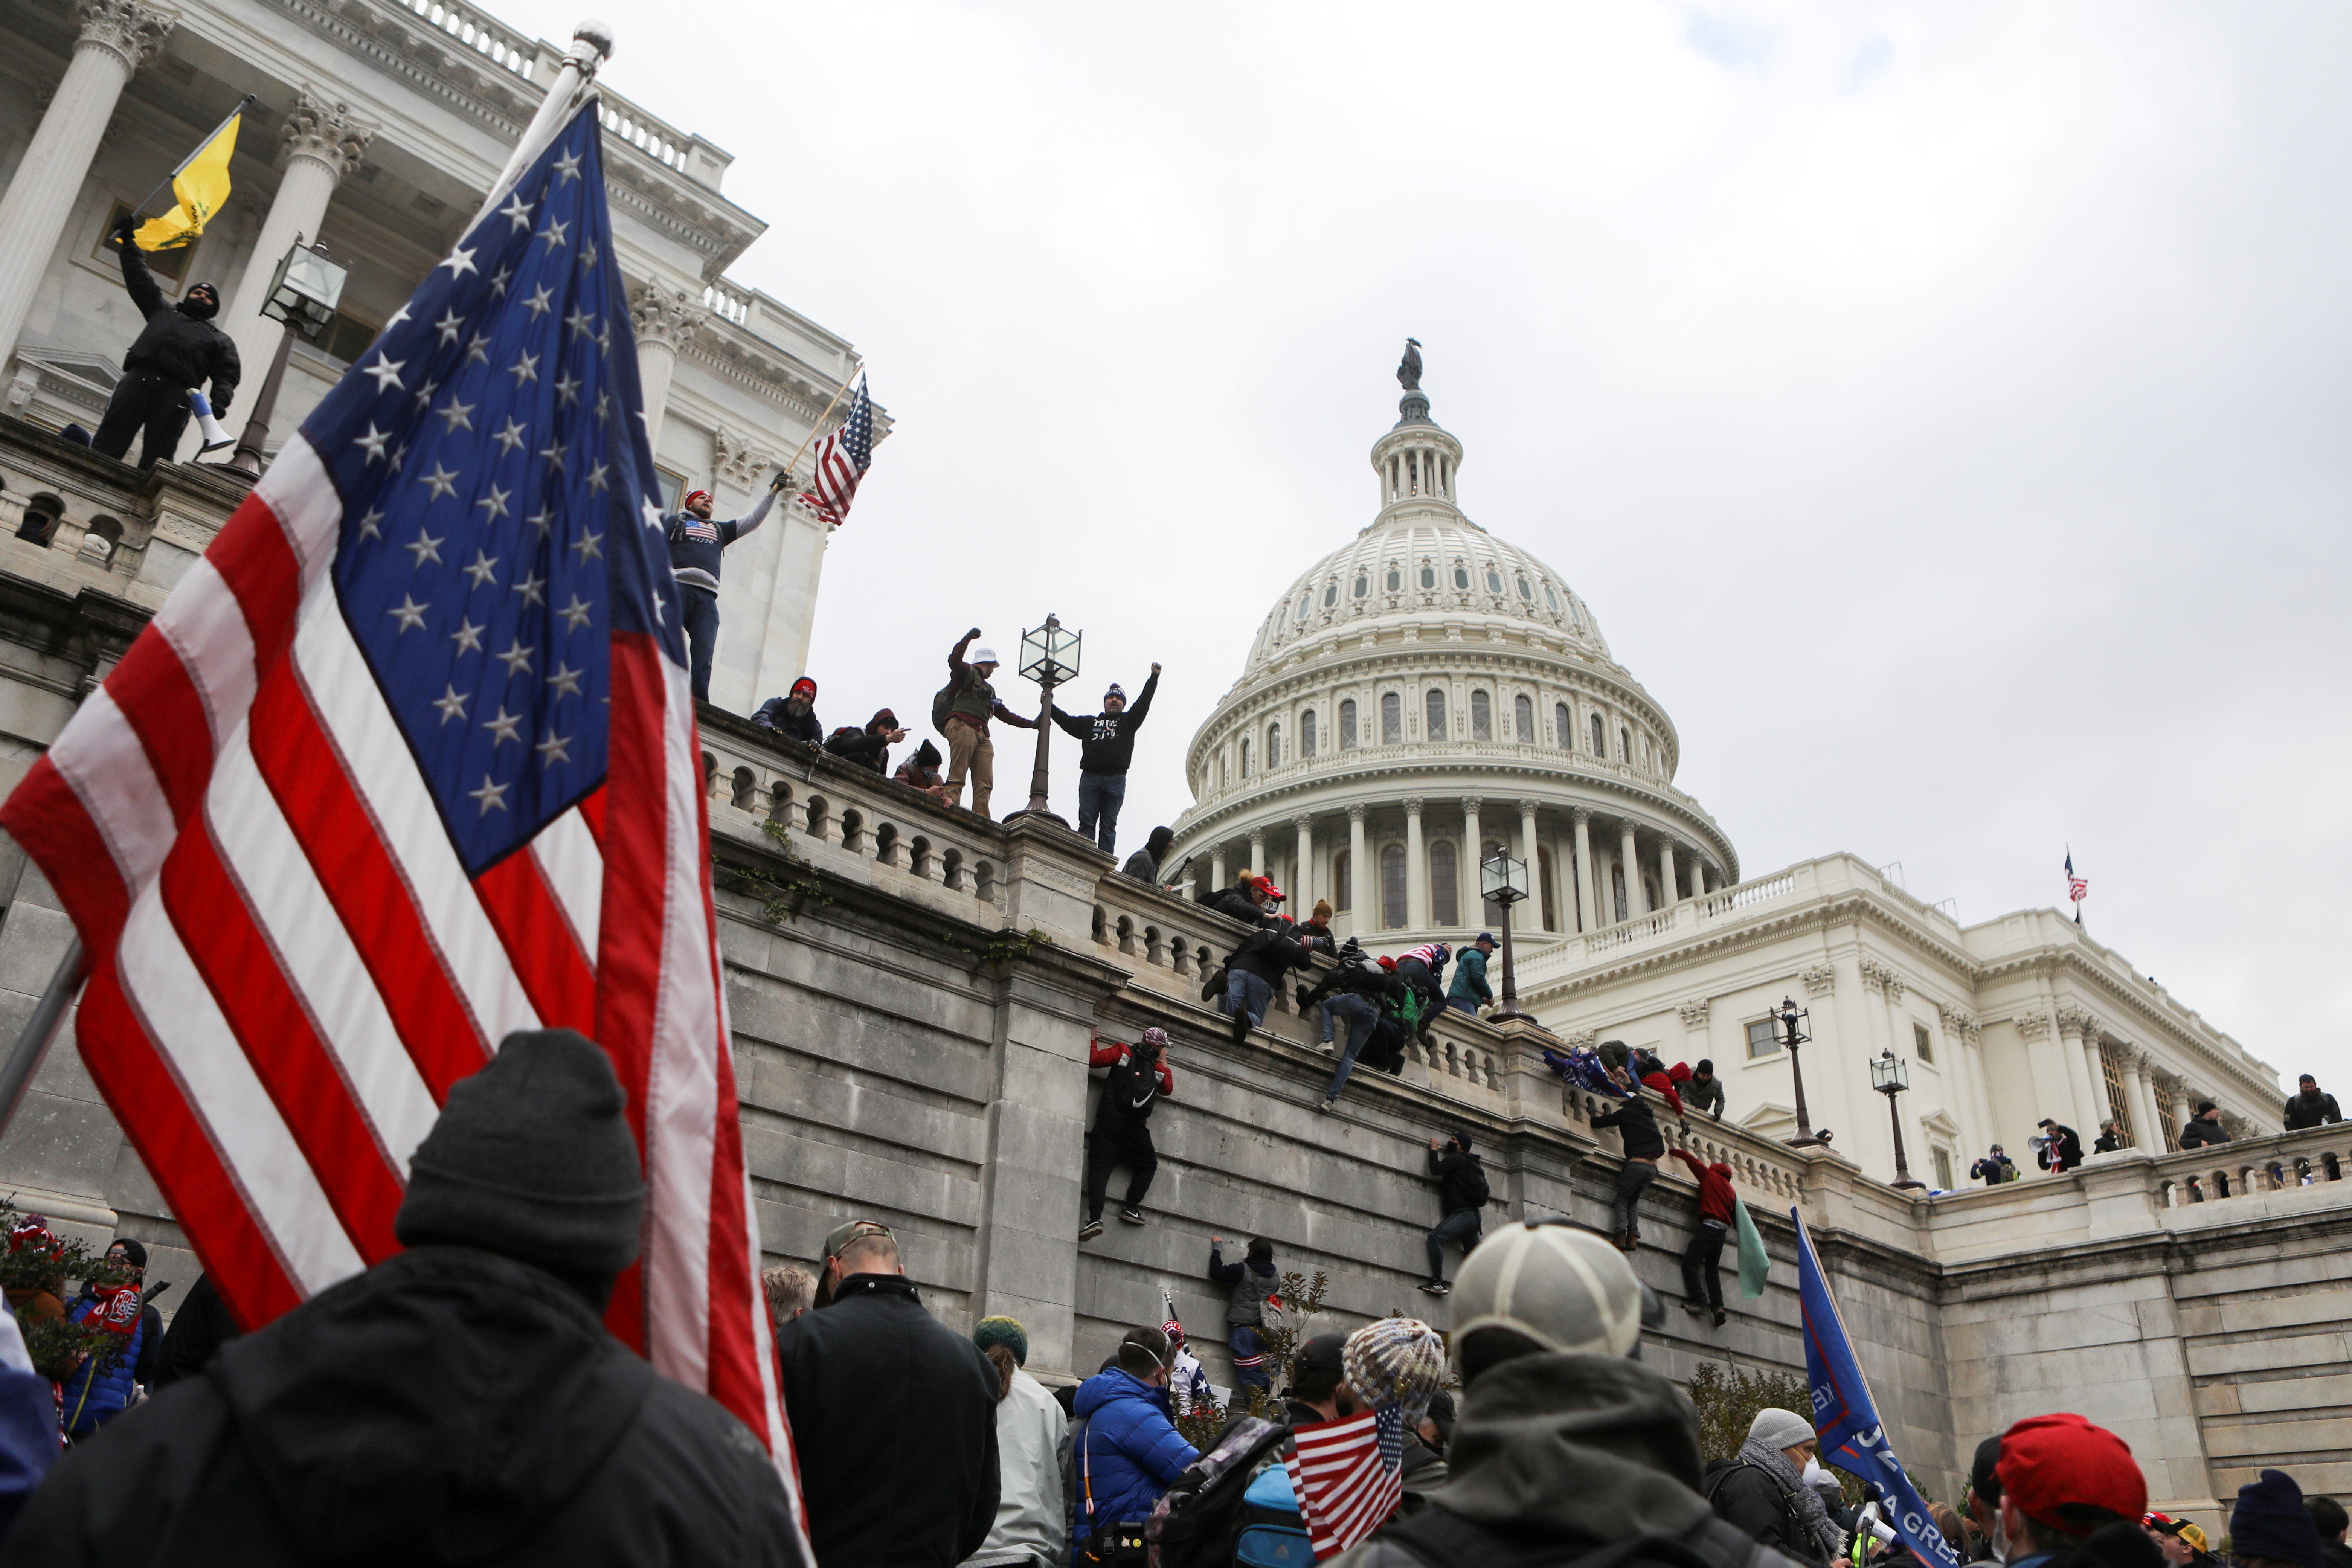 Supporters of U.S. President Donald Trump climb on walls at the U.S. Capitol during a protest against the certification of the 2020 U.S. presidential election results by the U.S. Congress, in Washington, U.S., January 6, 2021. REUTERS/Jim Urquhart     TPX IMAGES OF THE DAY - RC2L2L9T7RPX